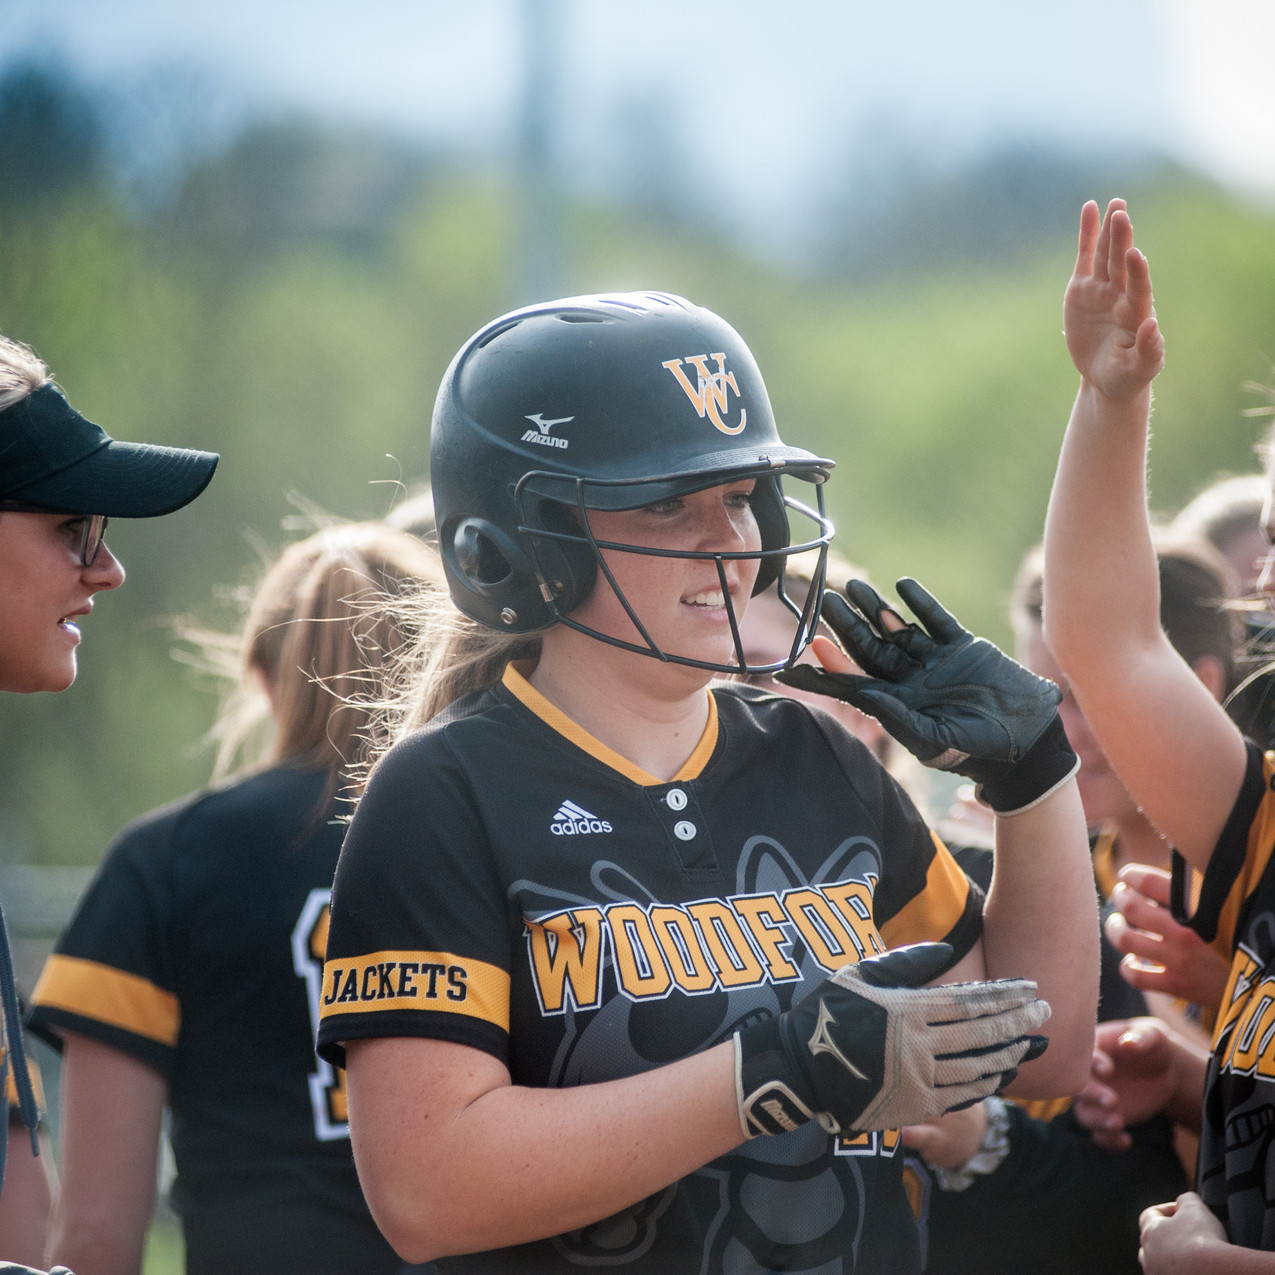 WCHS SOPHOMORE ABBY MOFFETT high-fives teammates after hitting a two-run home run in the Lady Jackets mercy rule win against Frankfort on Wednesday, April 25.  (Photo by Bill Caine)